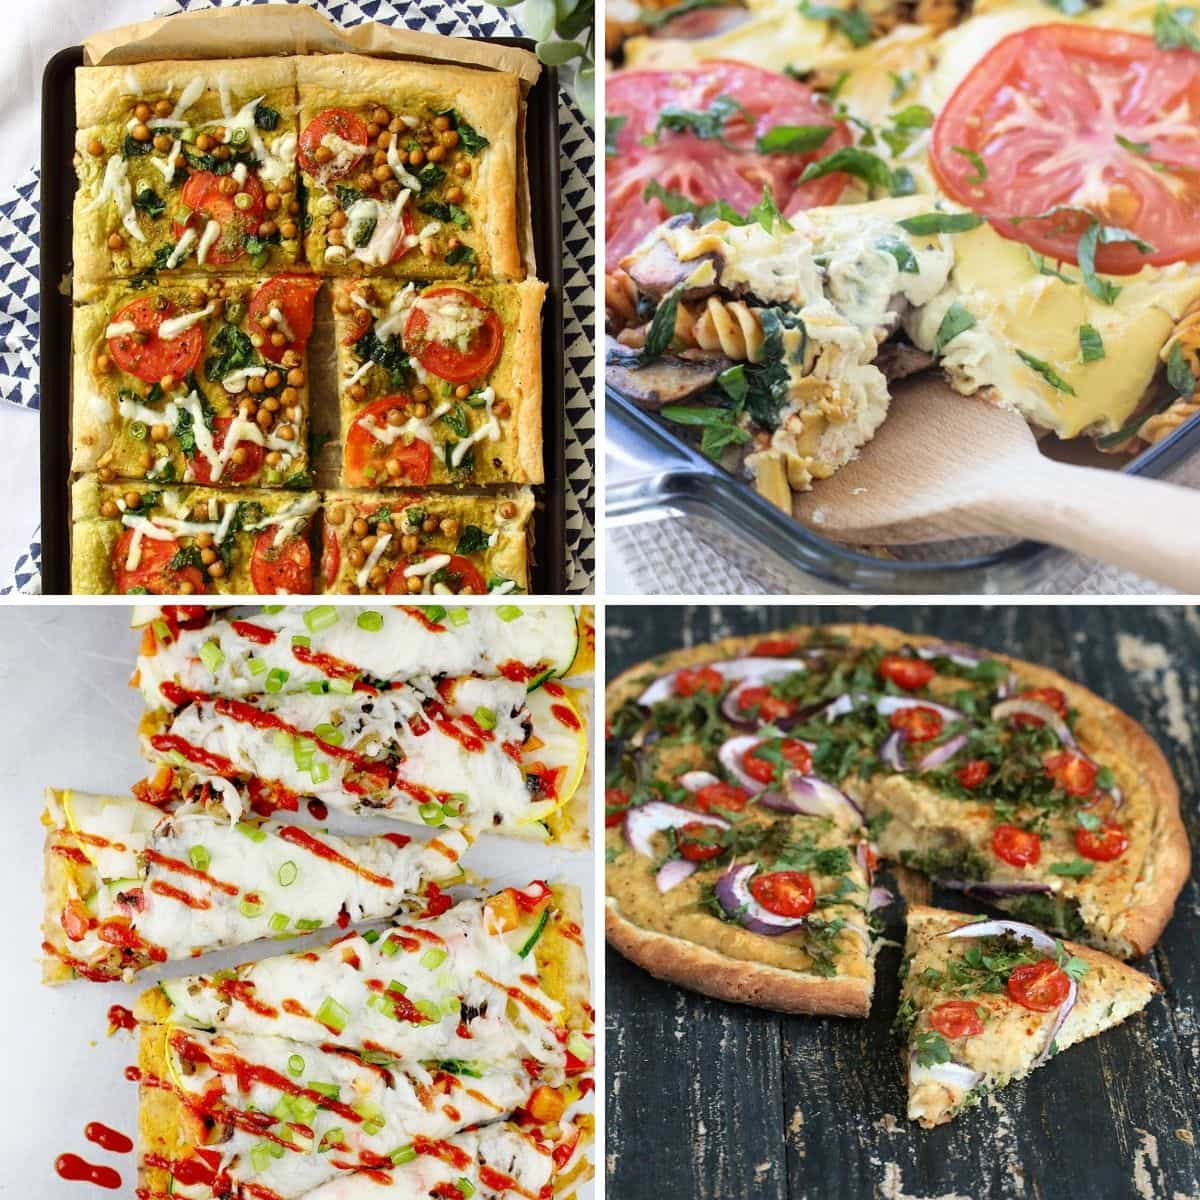 4 images 4 food: Spinach & Tomato Hummus Tart, High Protein Vegan Pasta Bake, Spicy Vegetable Thai Flatbread, Roasted Hatch Chile White Bean Hummus on Quinoa Pizza Crust